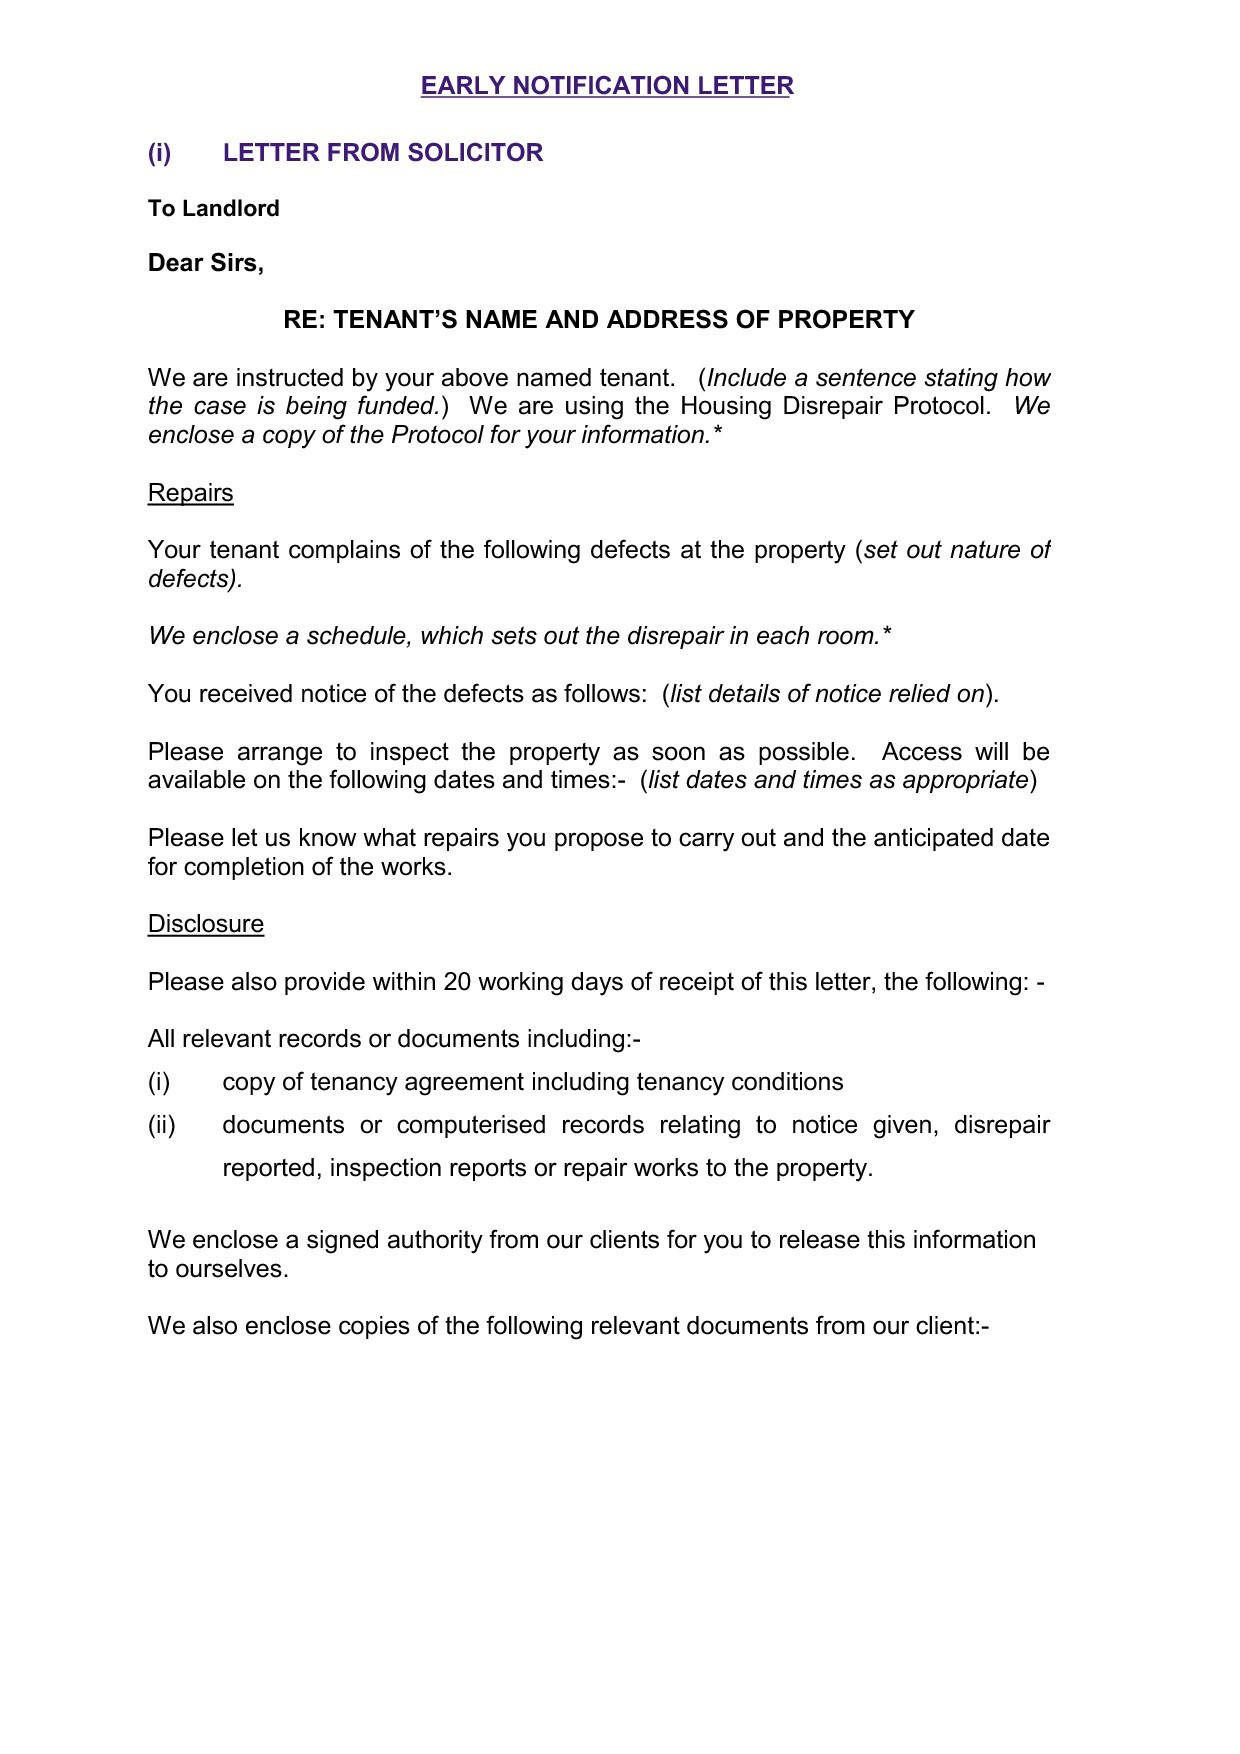 routine inspection letter to tenant template example-Property Inspection Letter to Tenant Uk Archives New Property Inspection Letter to Tenant Uk Archives Codeshaker 17-q